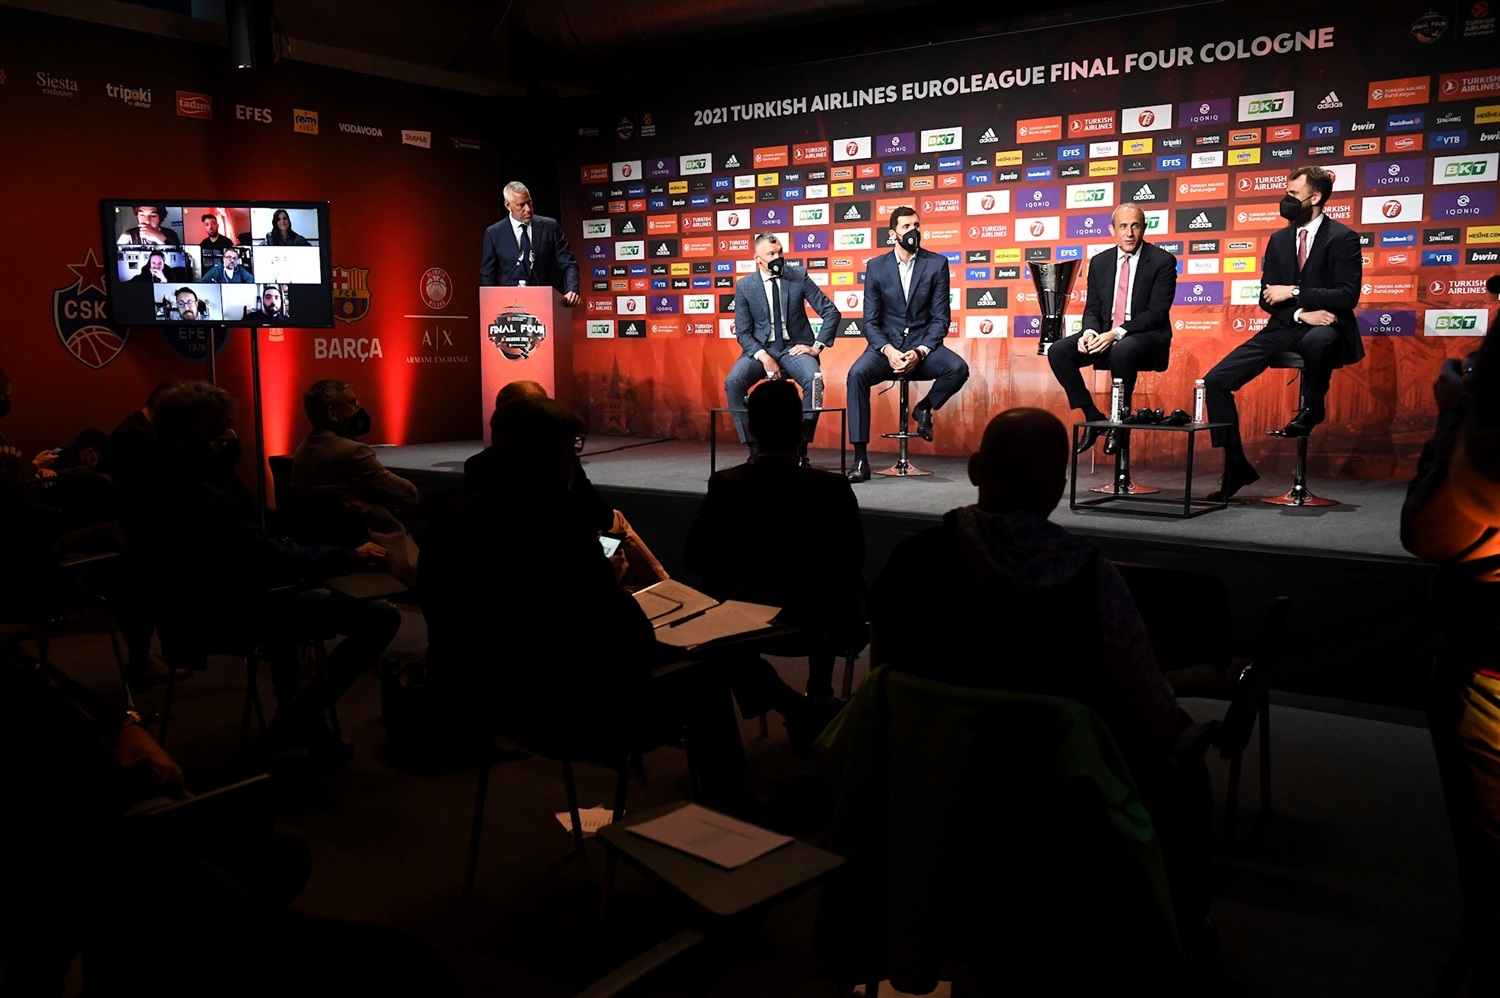 Opening Press Conference - Final Four Cologne 2021 - EB20